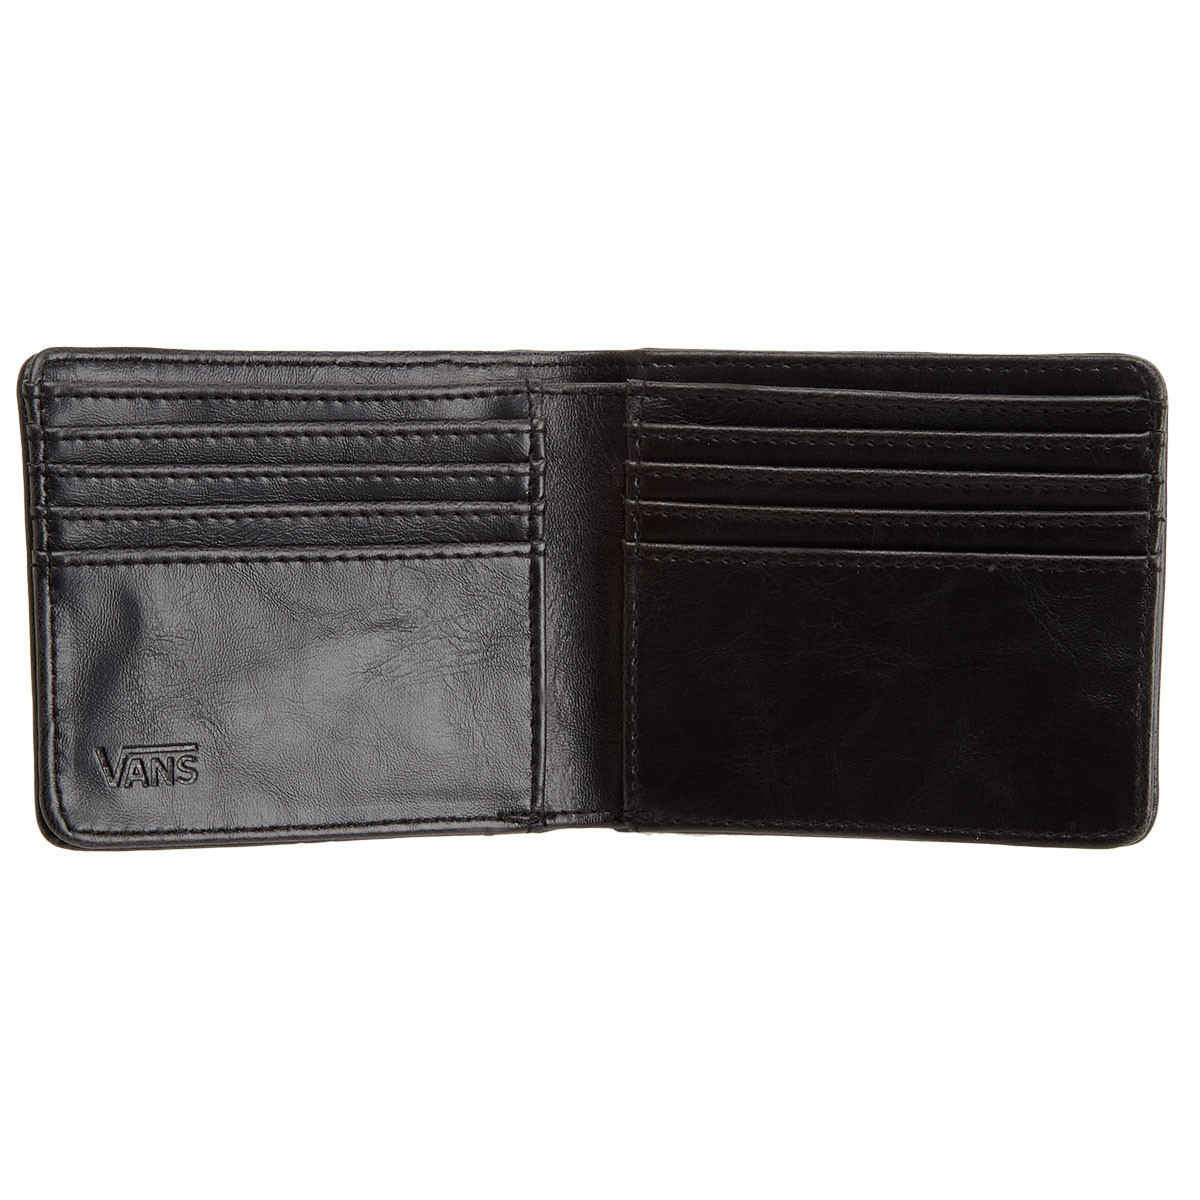 ed04d2b2ee7a31 Vans Full Patch Bifold Wallet - Black